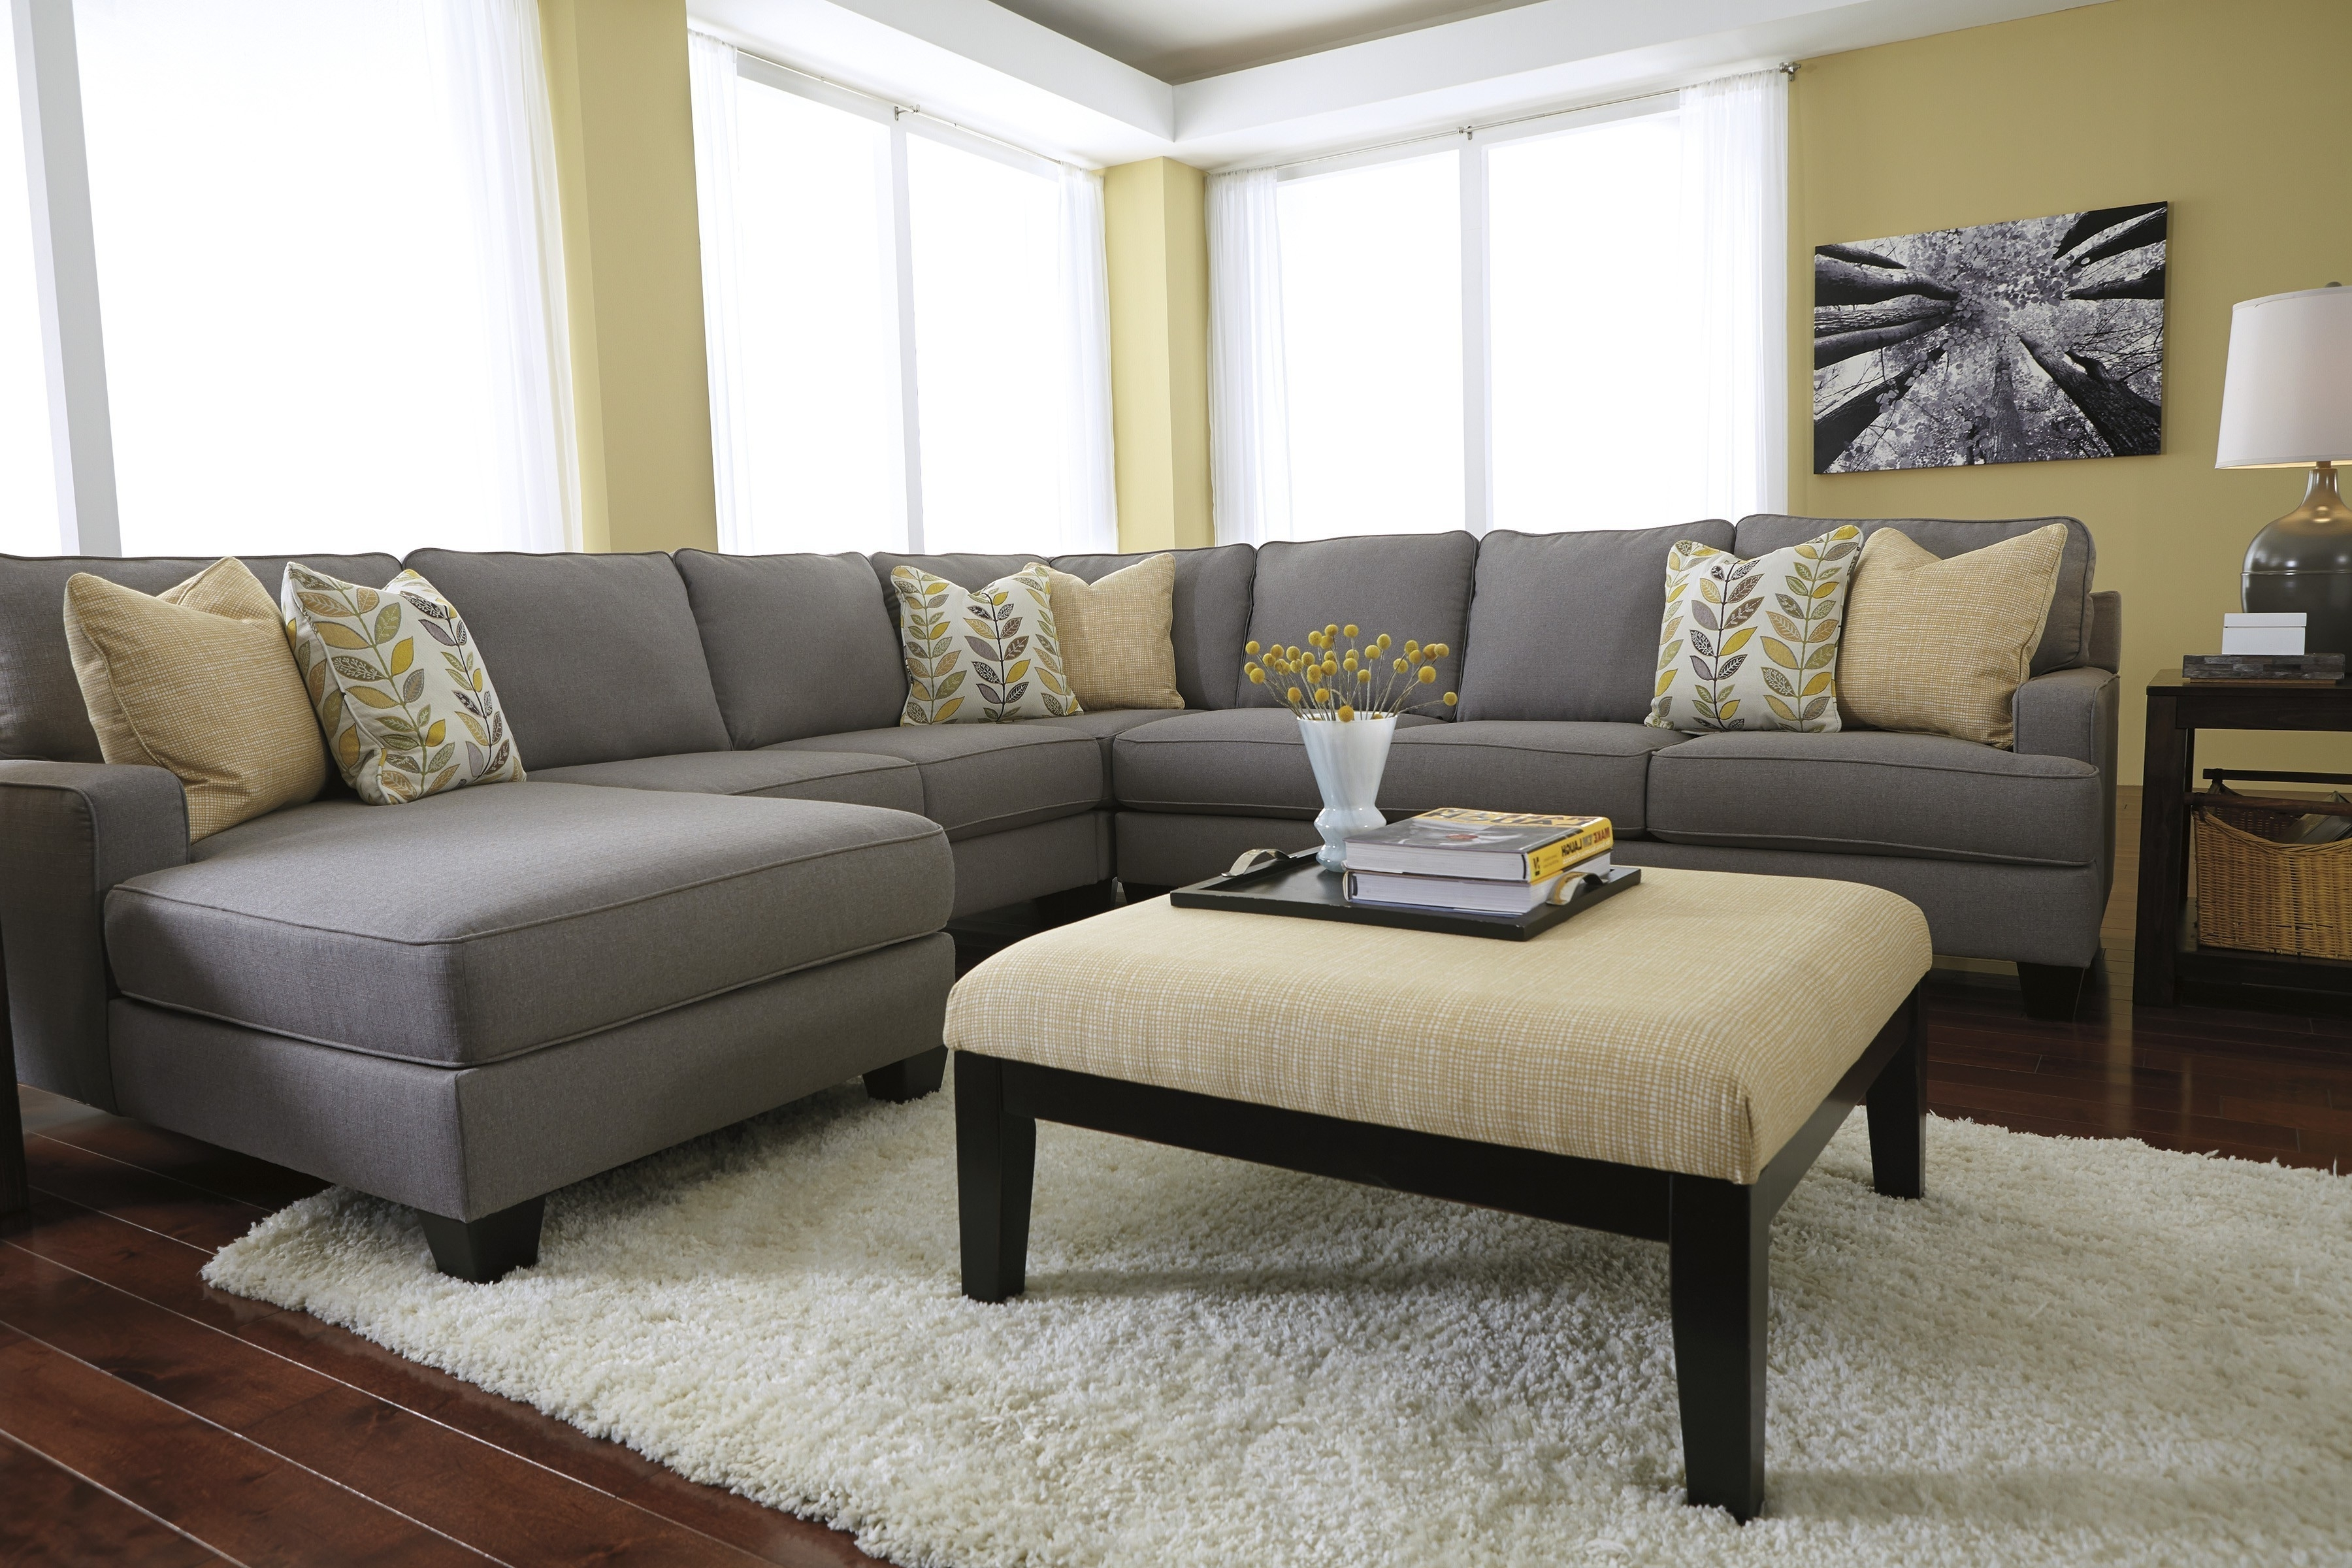 Most Recent Cool Perfect Light Grey Sectional Sofa 49 With Additional Small Throughout Sectionals With Oversized Ottoman (View 10 of 20)